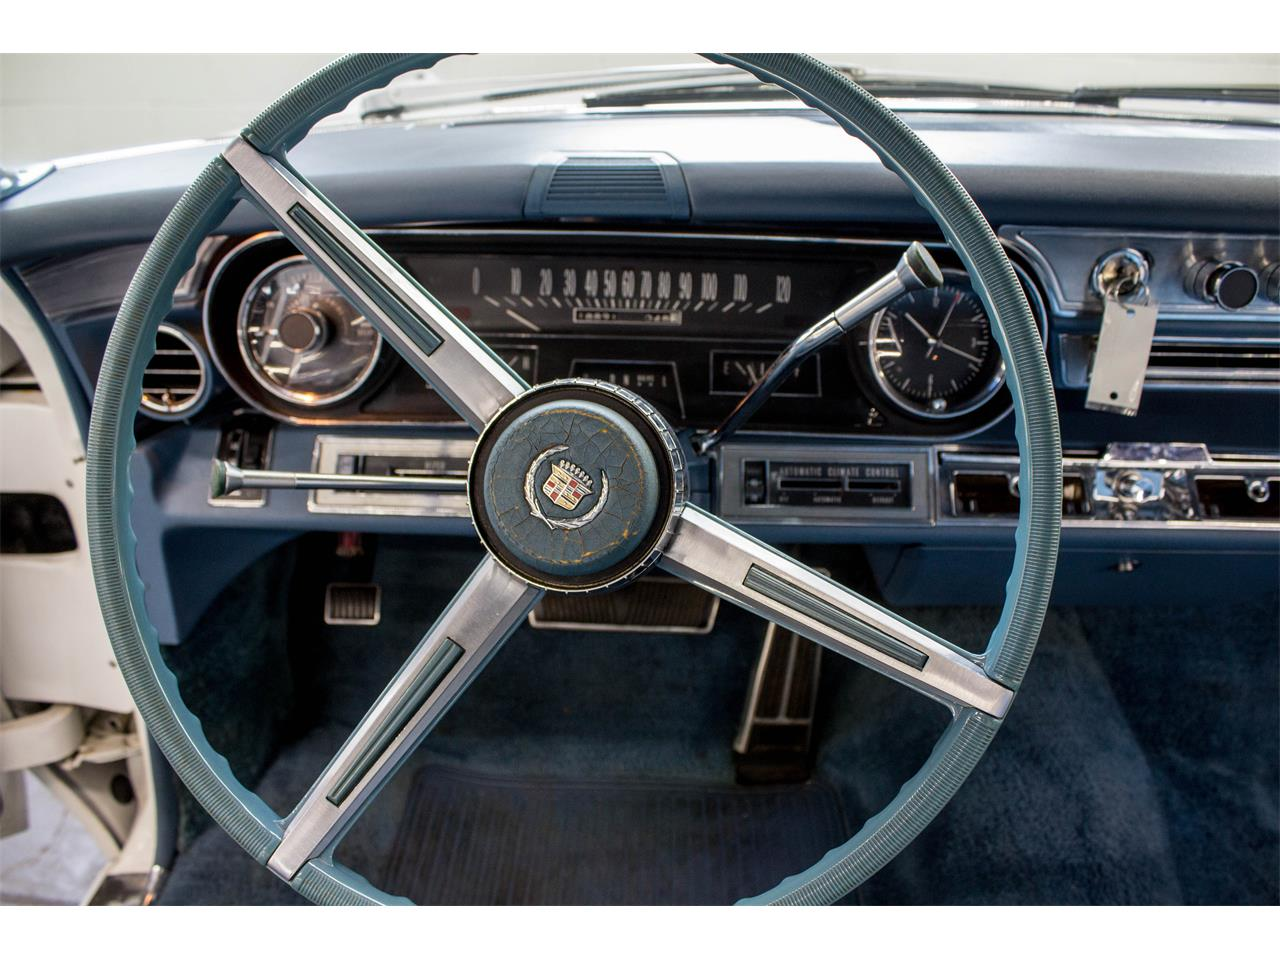 Large Picture of Classic 1966 Cadillac Fleetwood Limousine located in Montreal Quebec - $49,995.00 - NKXQ